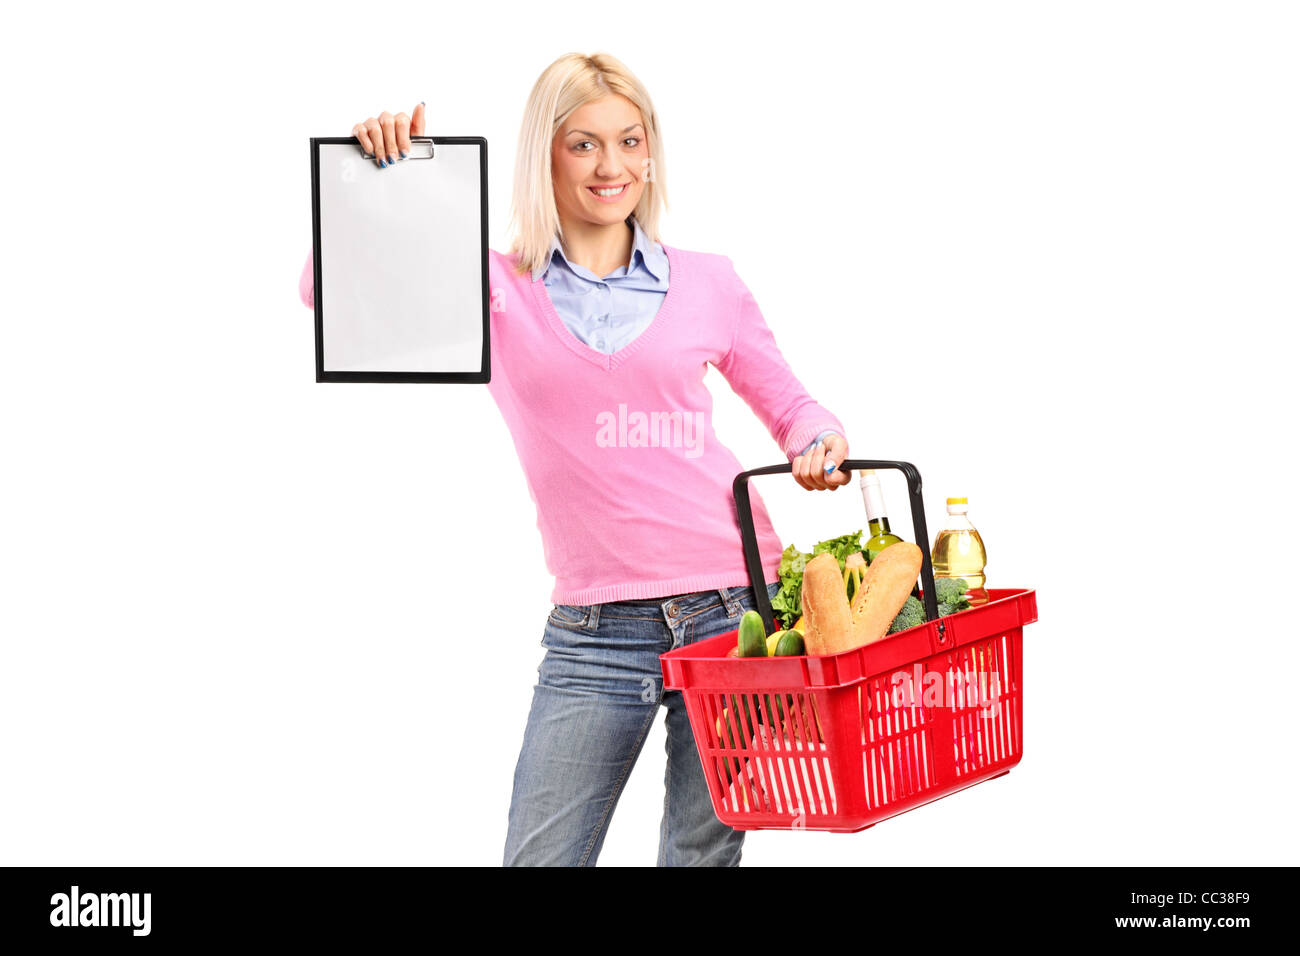 A female holding a shopping basket and showing a clipboard Stock Photo